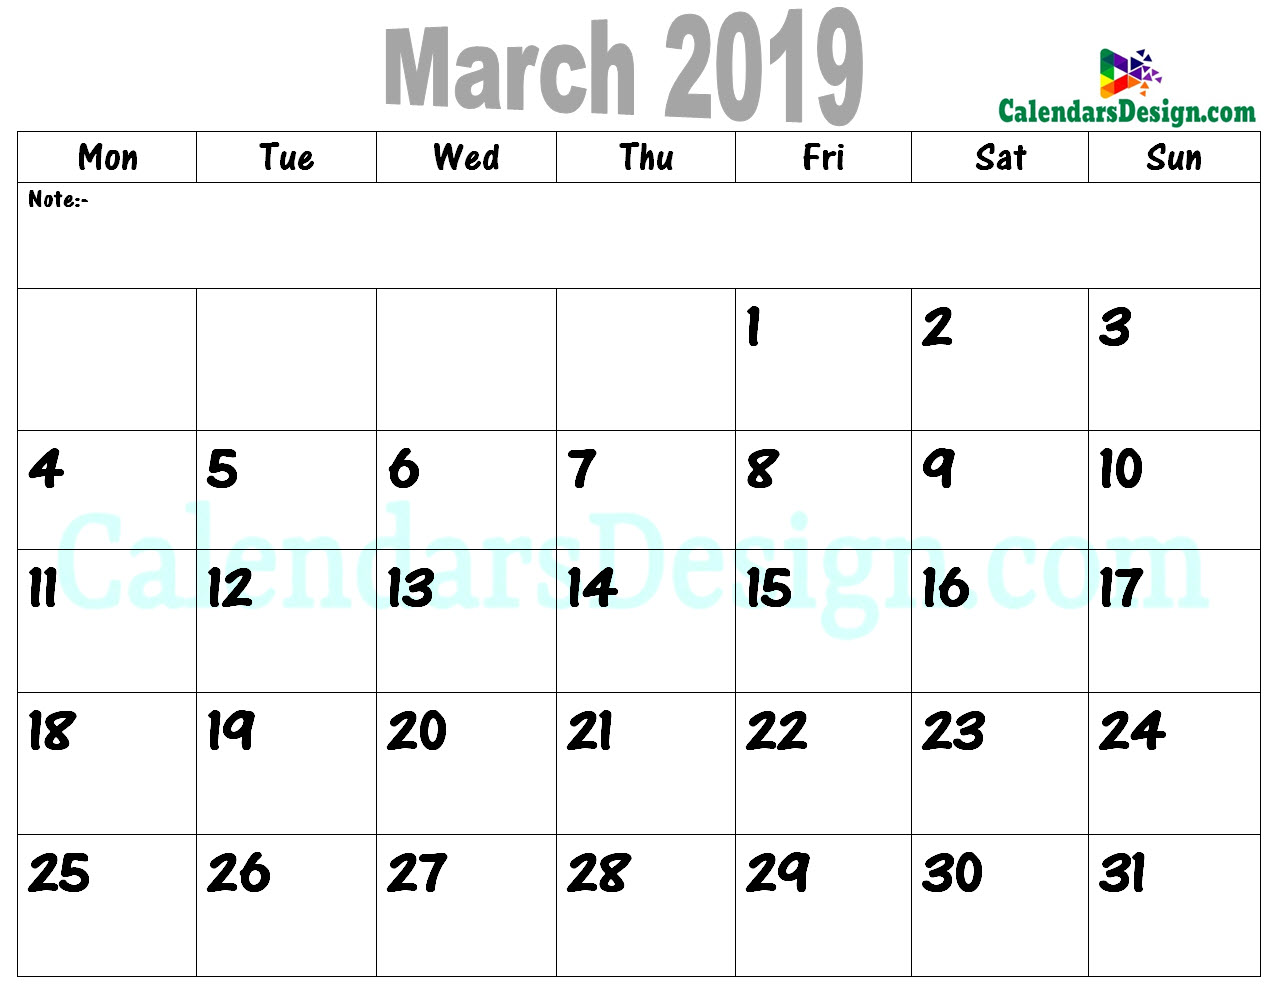 graphic about Calendar March Printable called March 2019 Calendar PDF